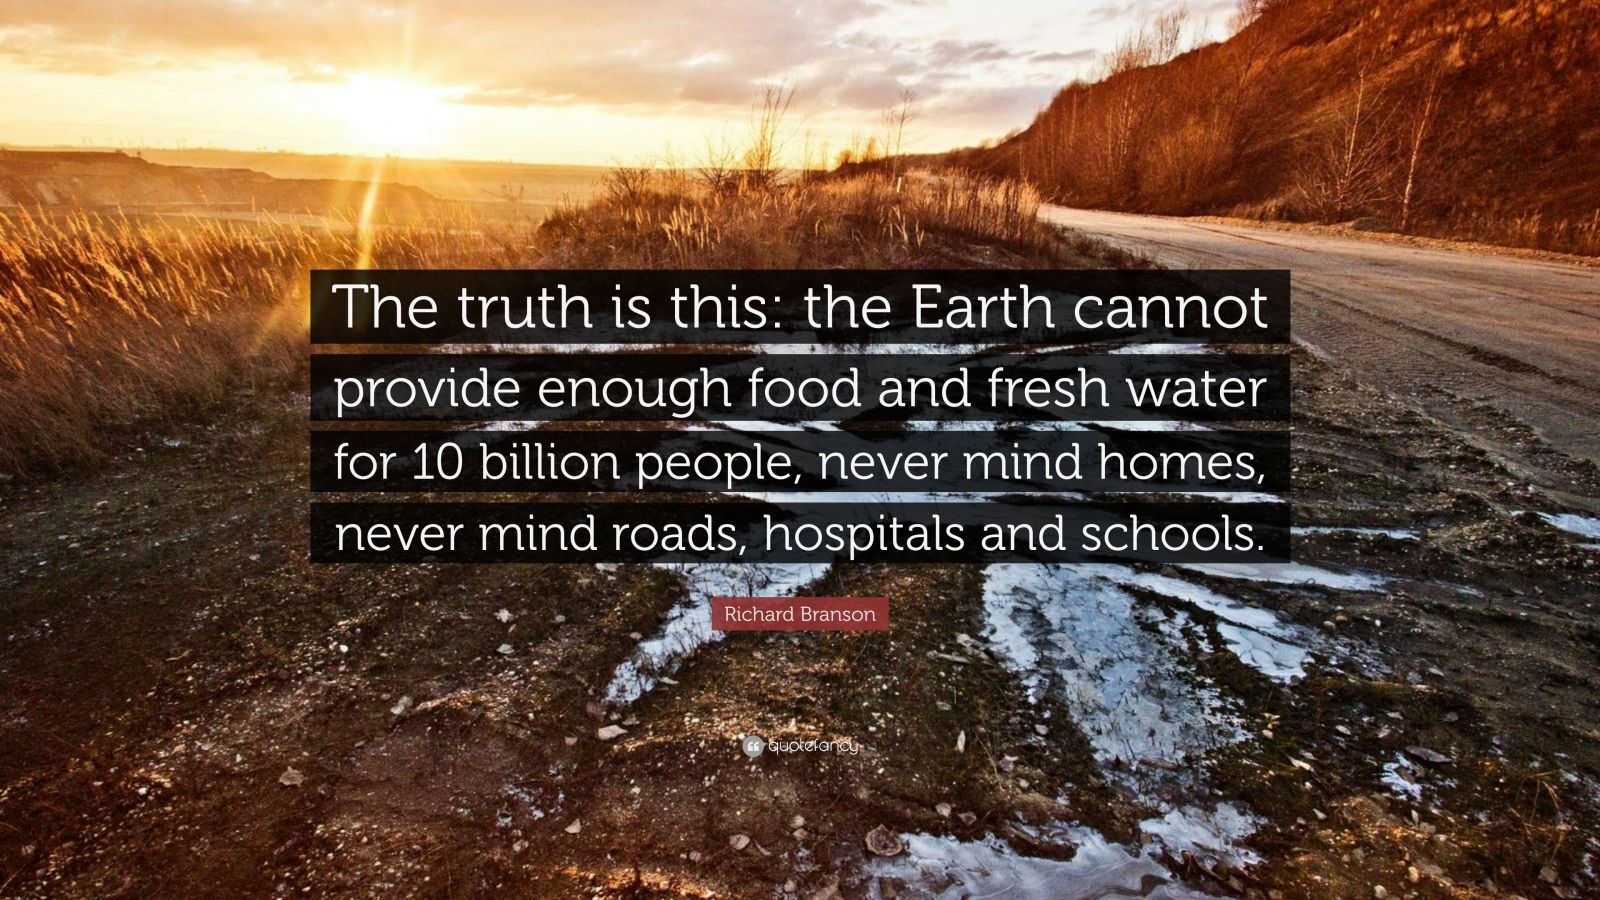 """Richard Branson Quote: """"The truth is this: the Earth cannot provide enough food and fresh water for 10 billion people, never mind homes, never mind roads, hospitals and schools."""""""